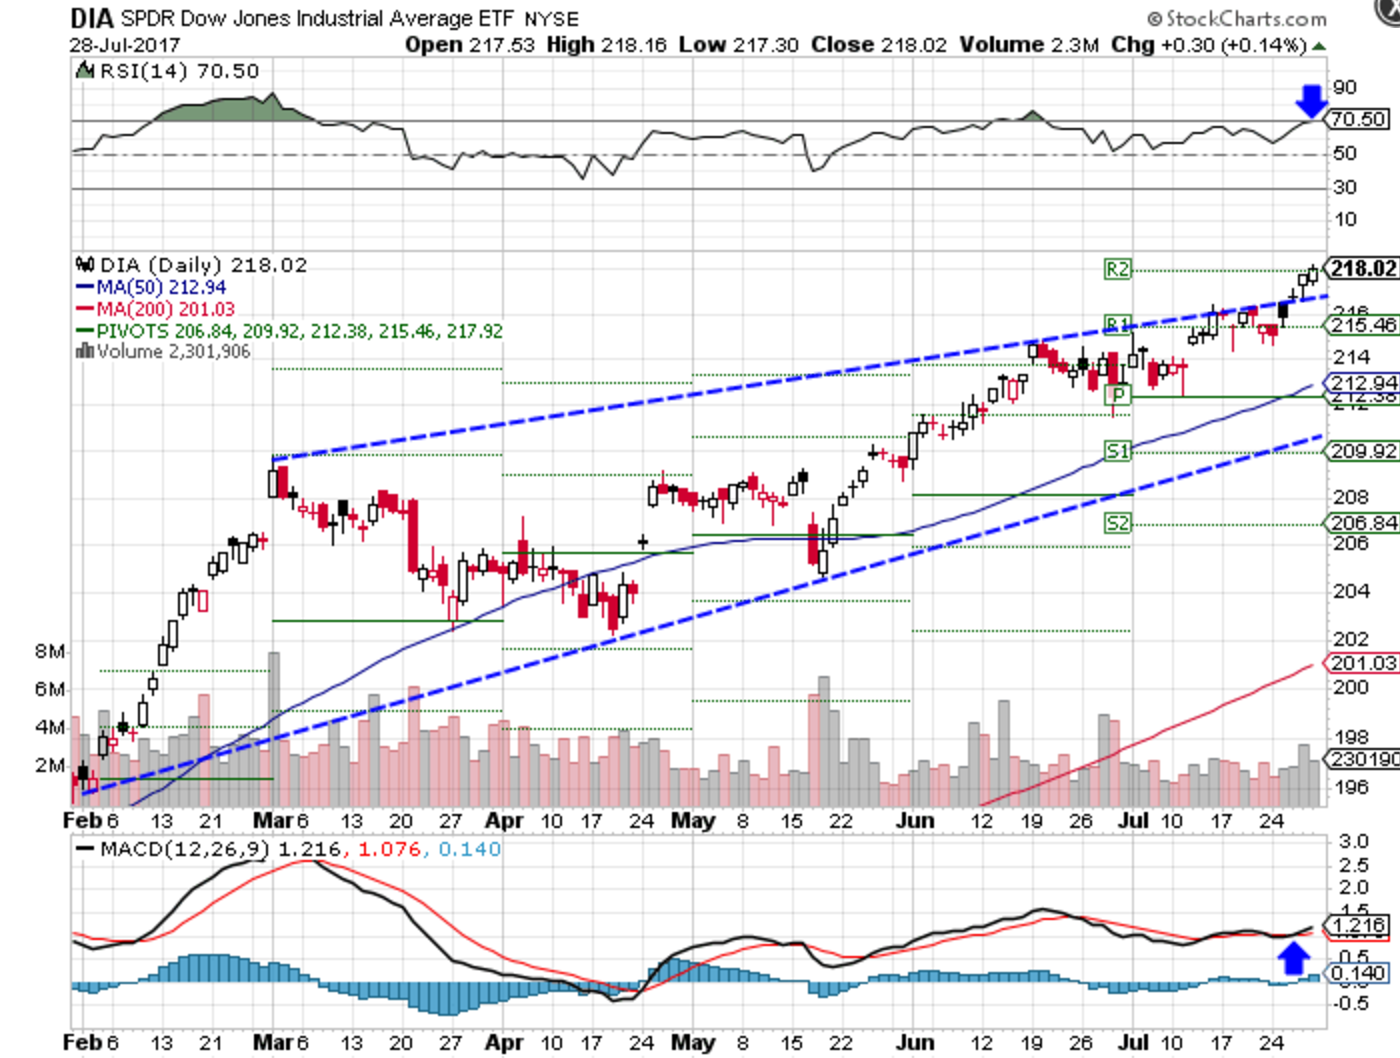 Technical chart showing performance of the Dow Jones Industrial Average SPDR ETF (DIA)